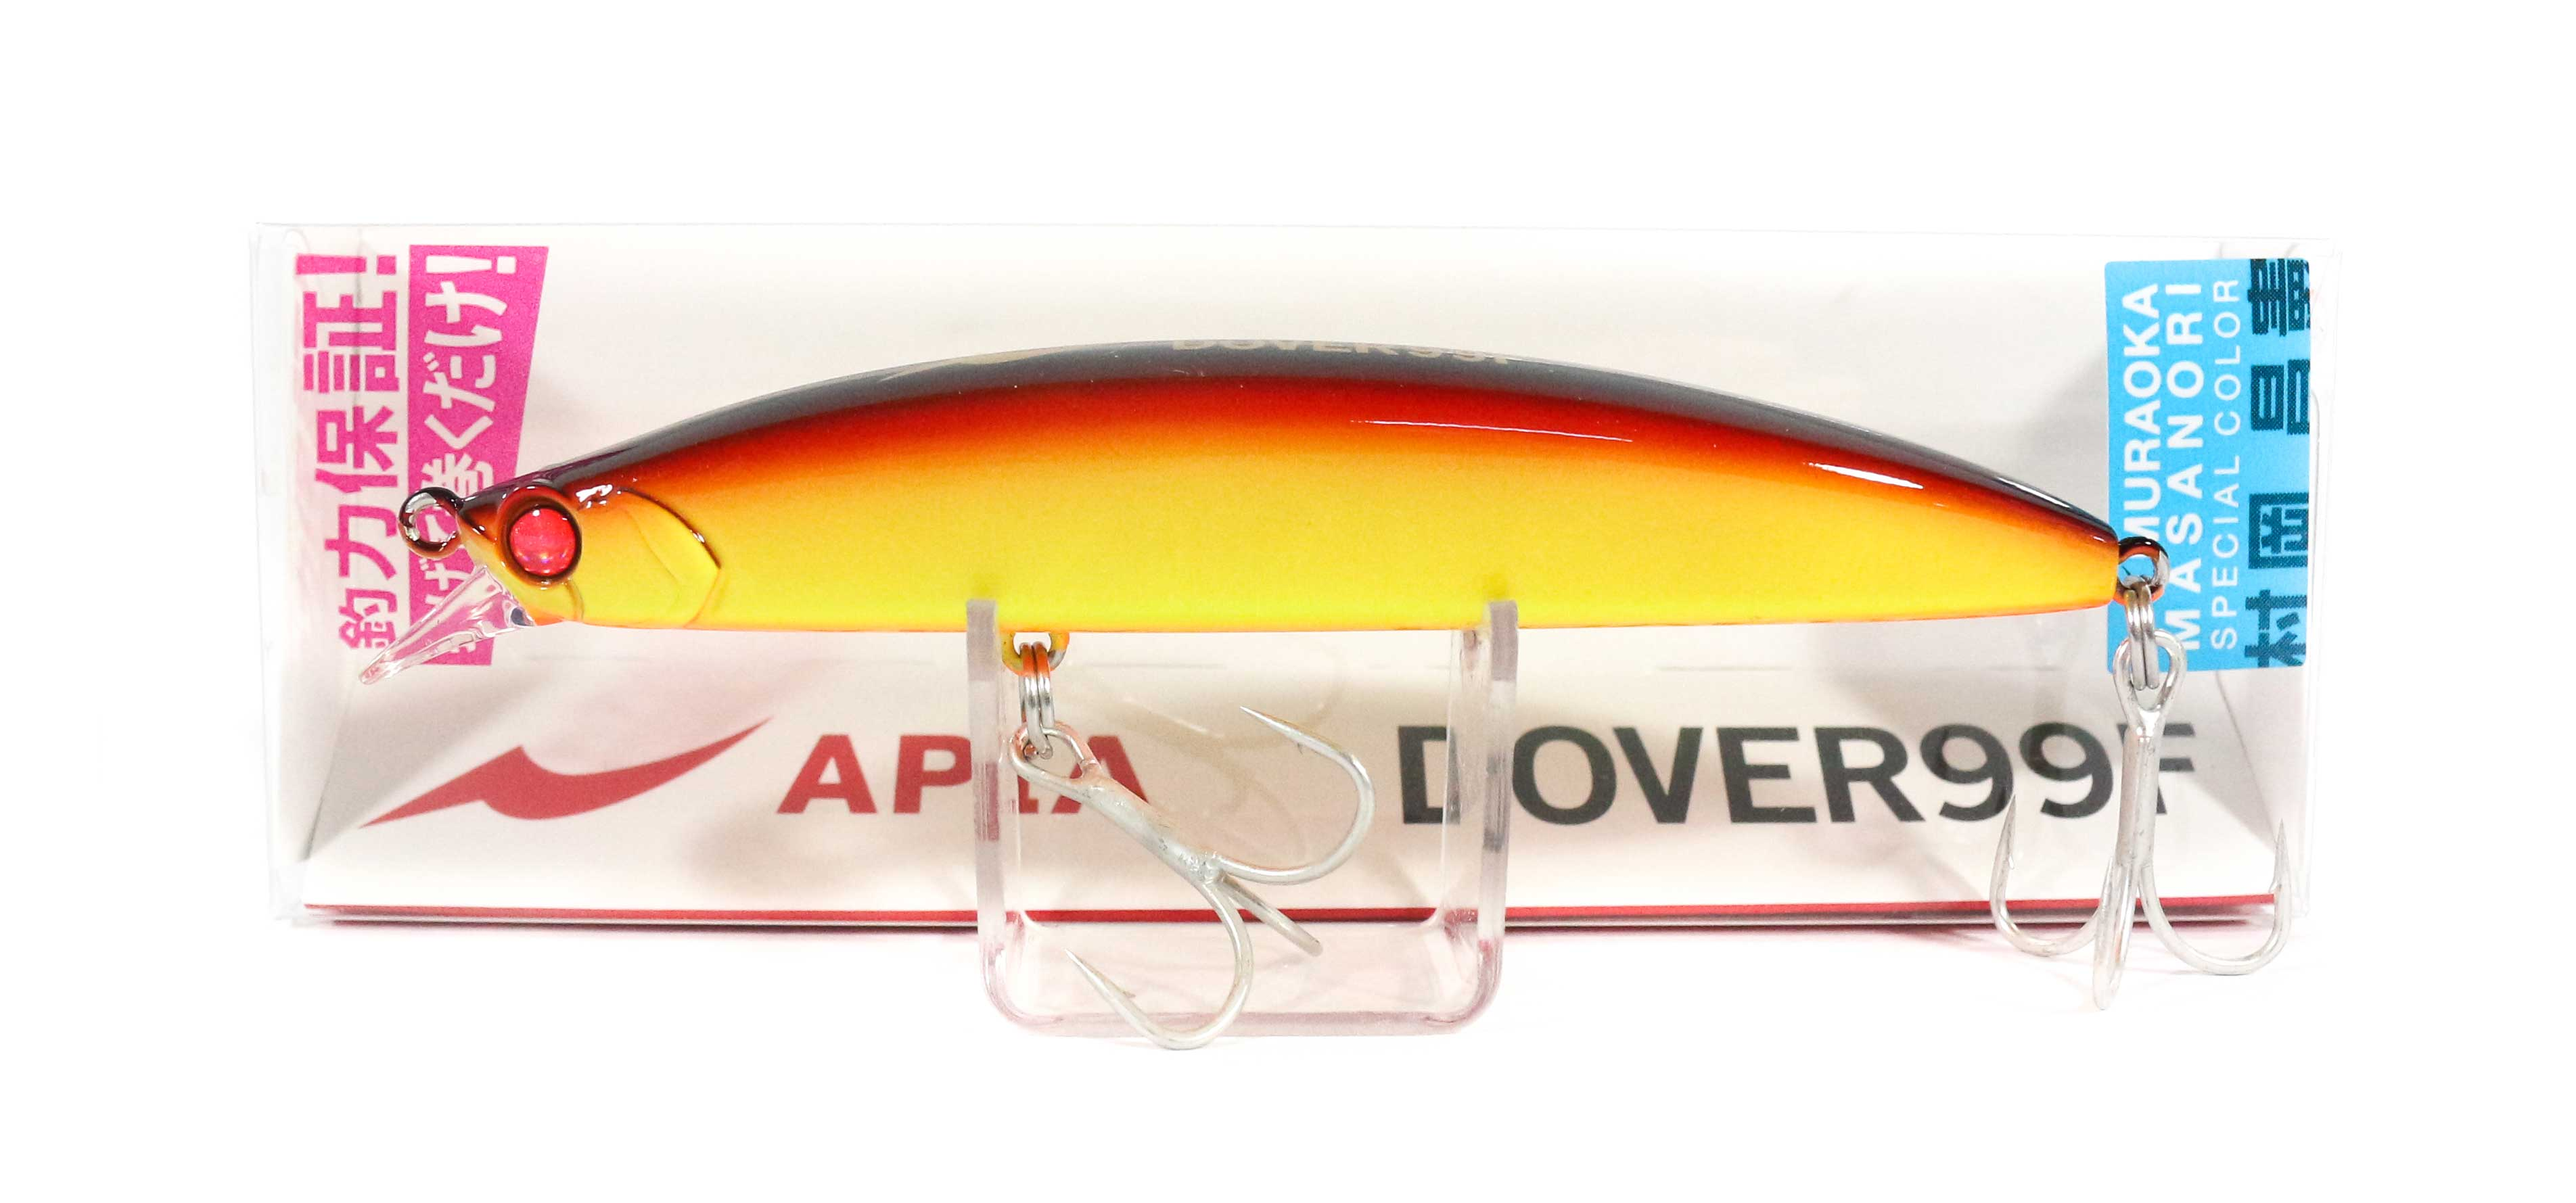 Apia Dover 99 F Floating Lure 10 (1468)